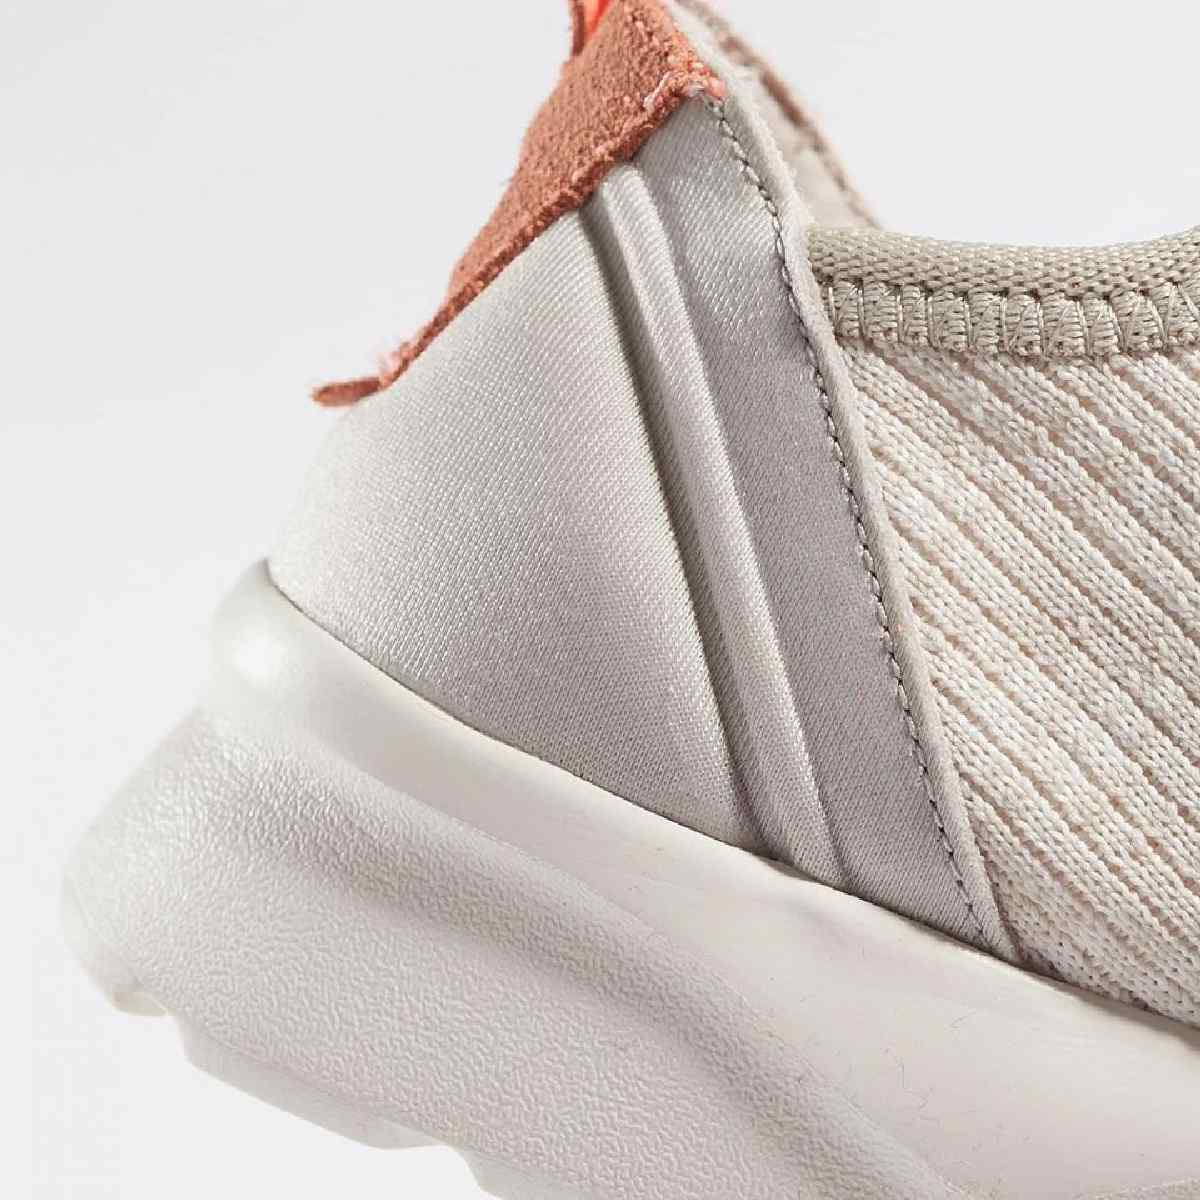 Adidas Zx Flux Adv Virtue Sock Beige Bb2317 1